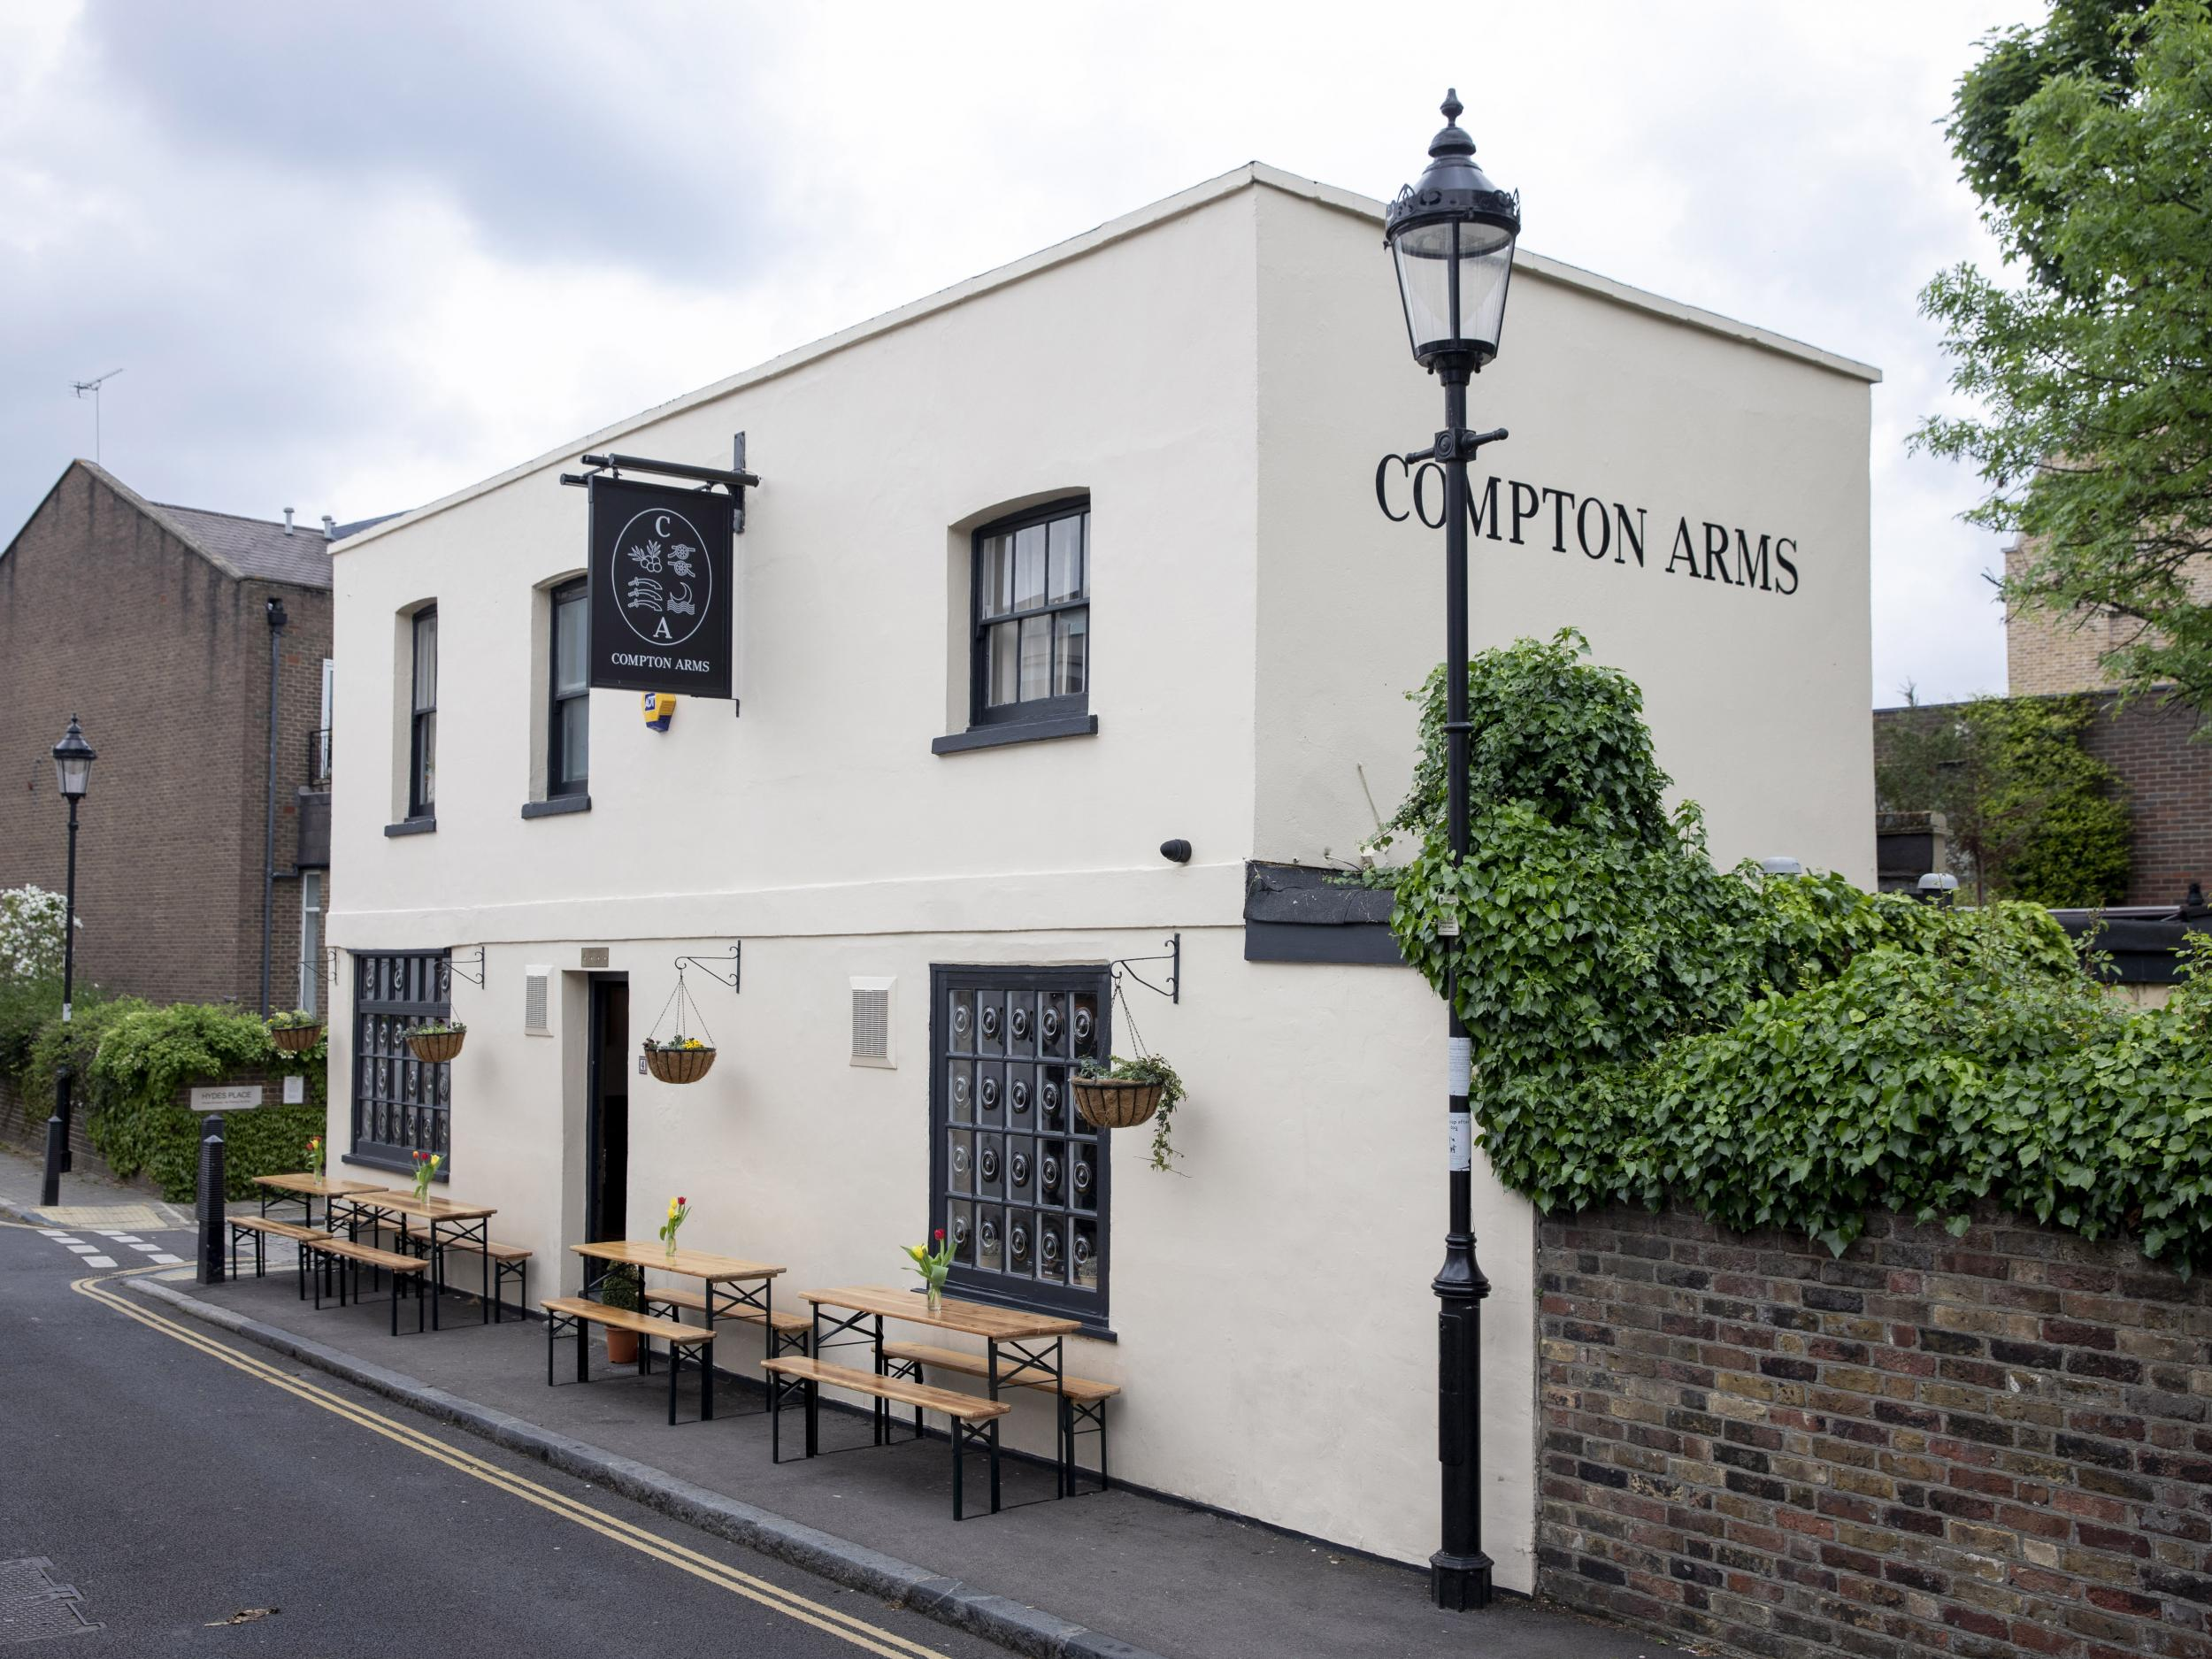 The Compton Arms: Orwellian dream or nightmare, depending on how you look at it 1